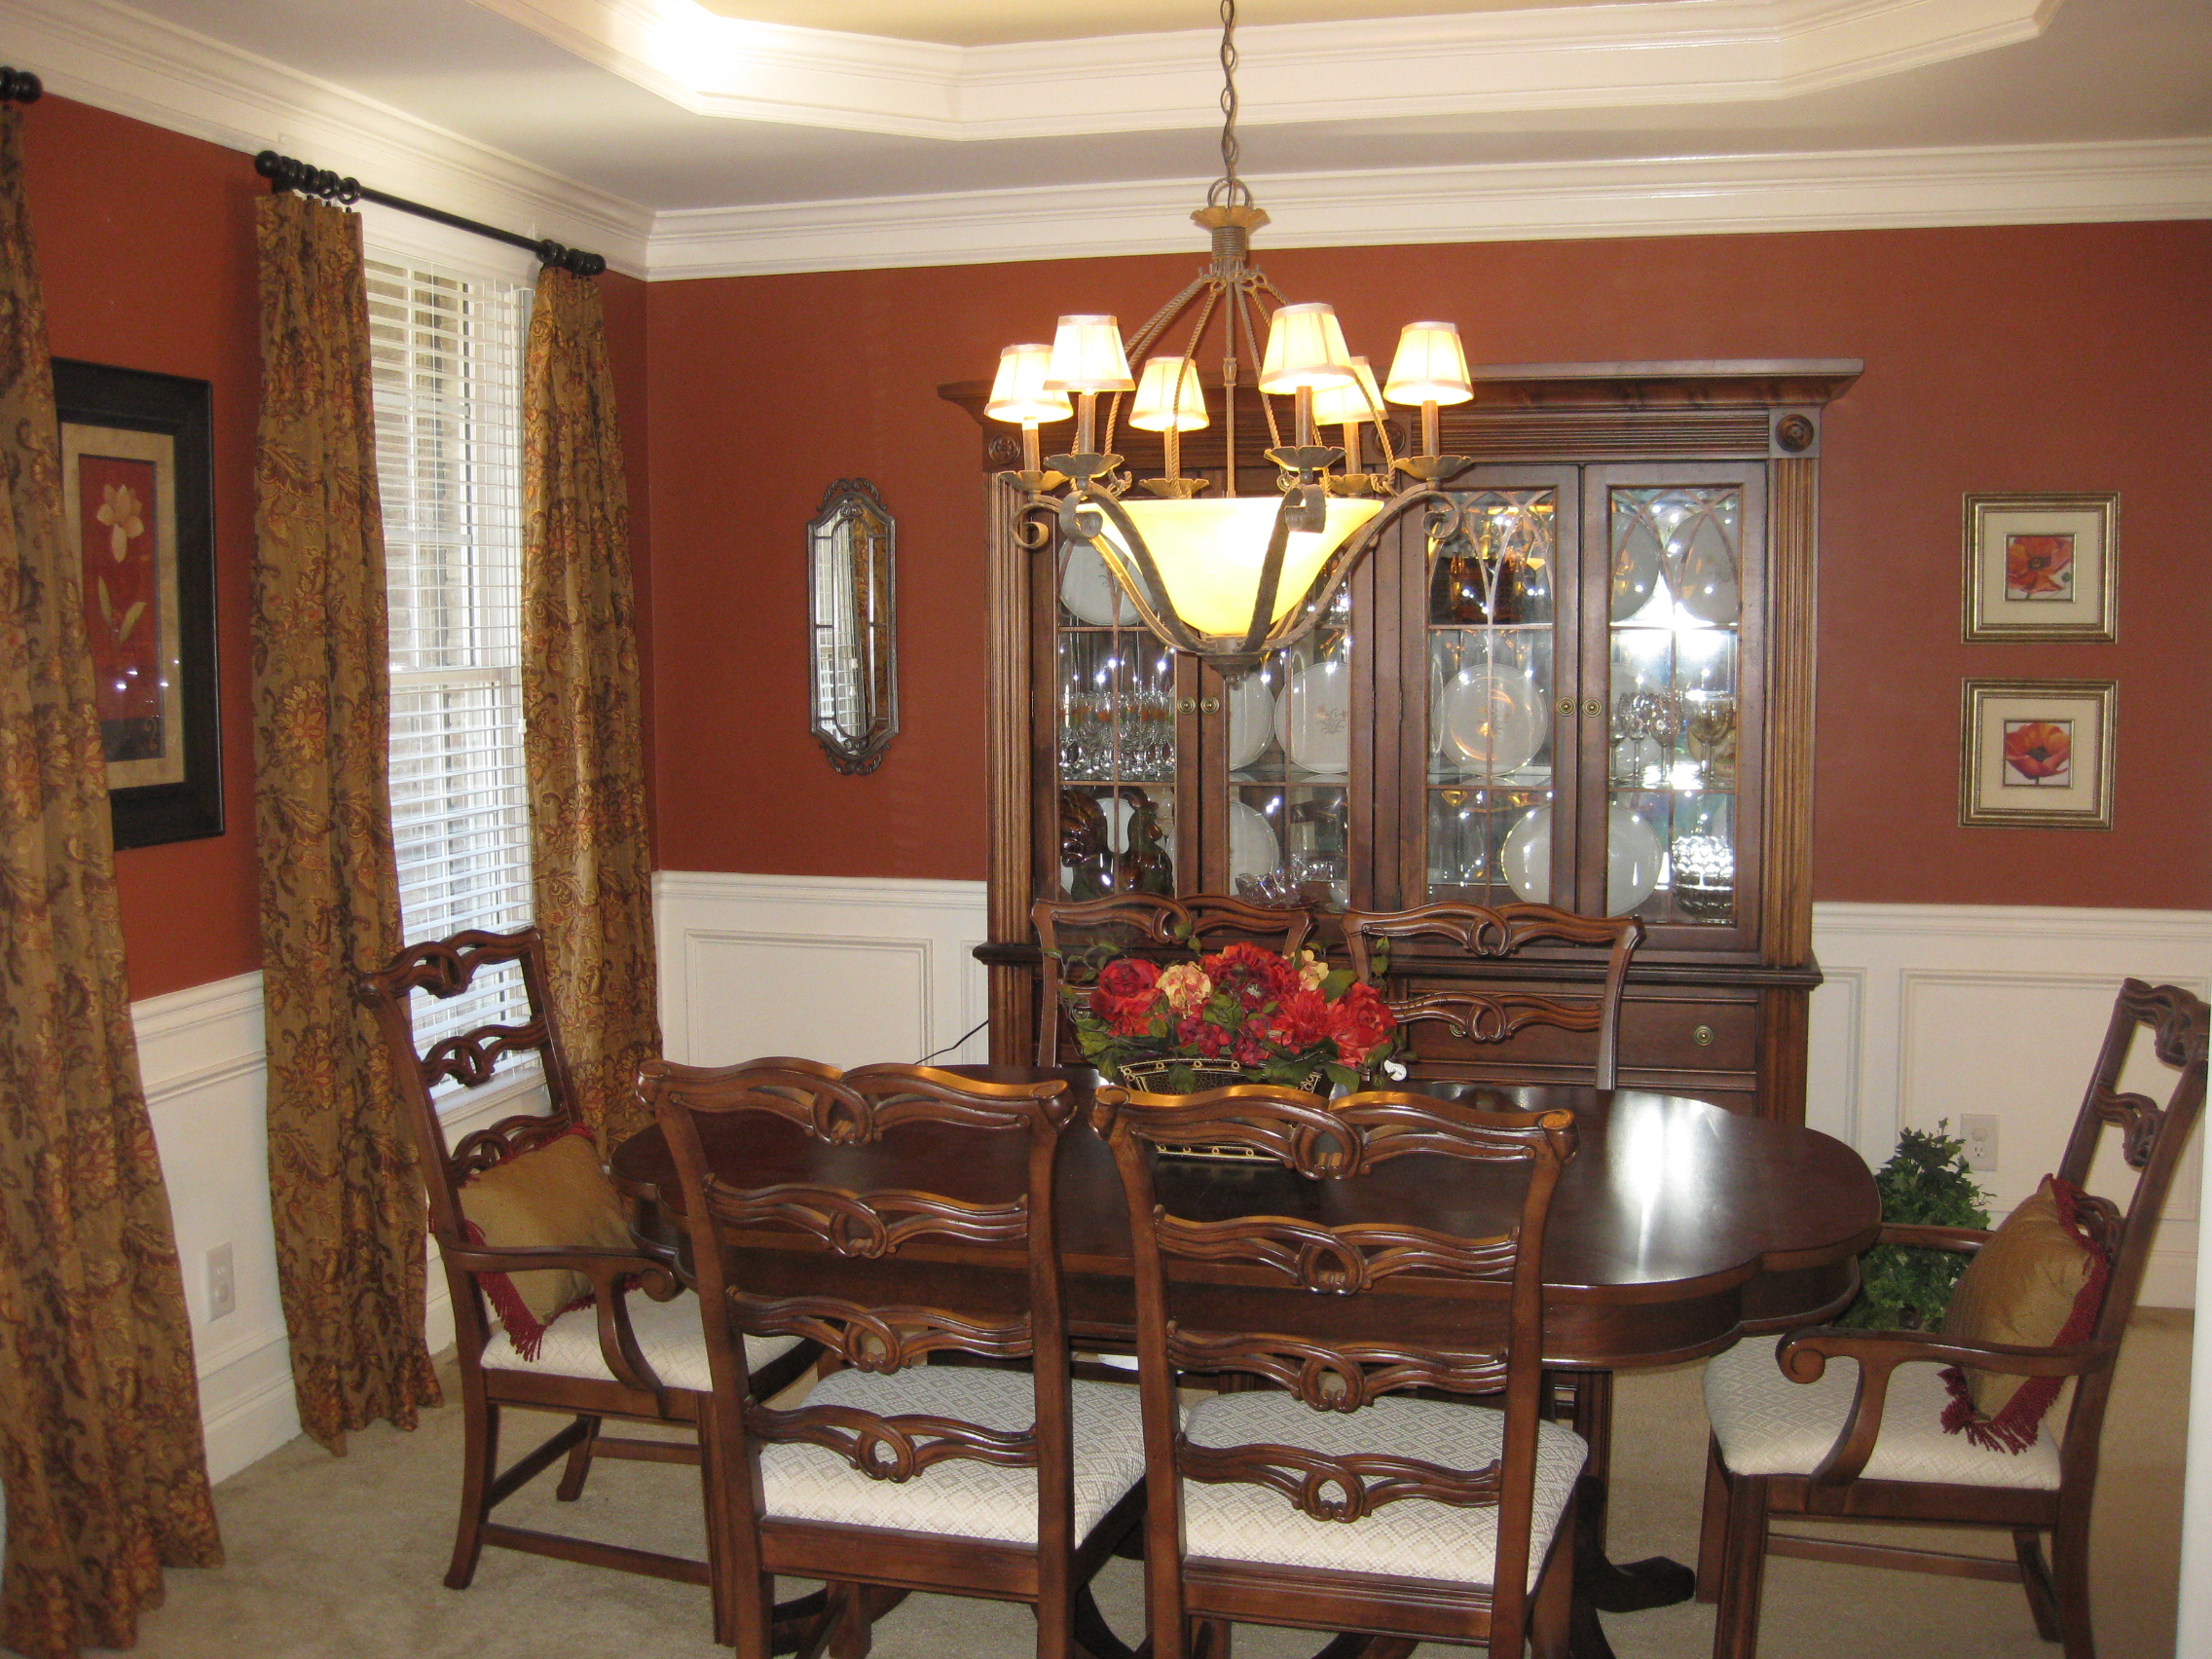 Traditional dining room decorating ideas 20 architecture - Cheap dining room decorating ideas ...